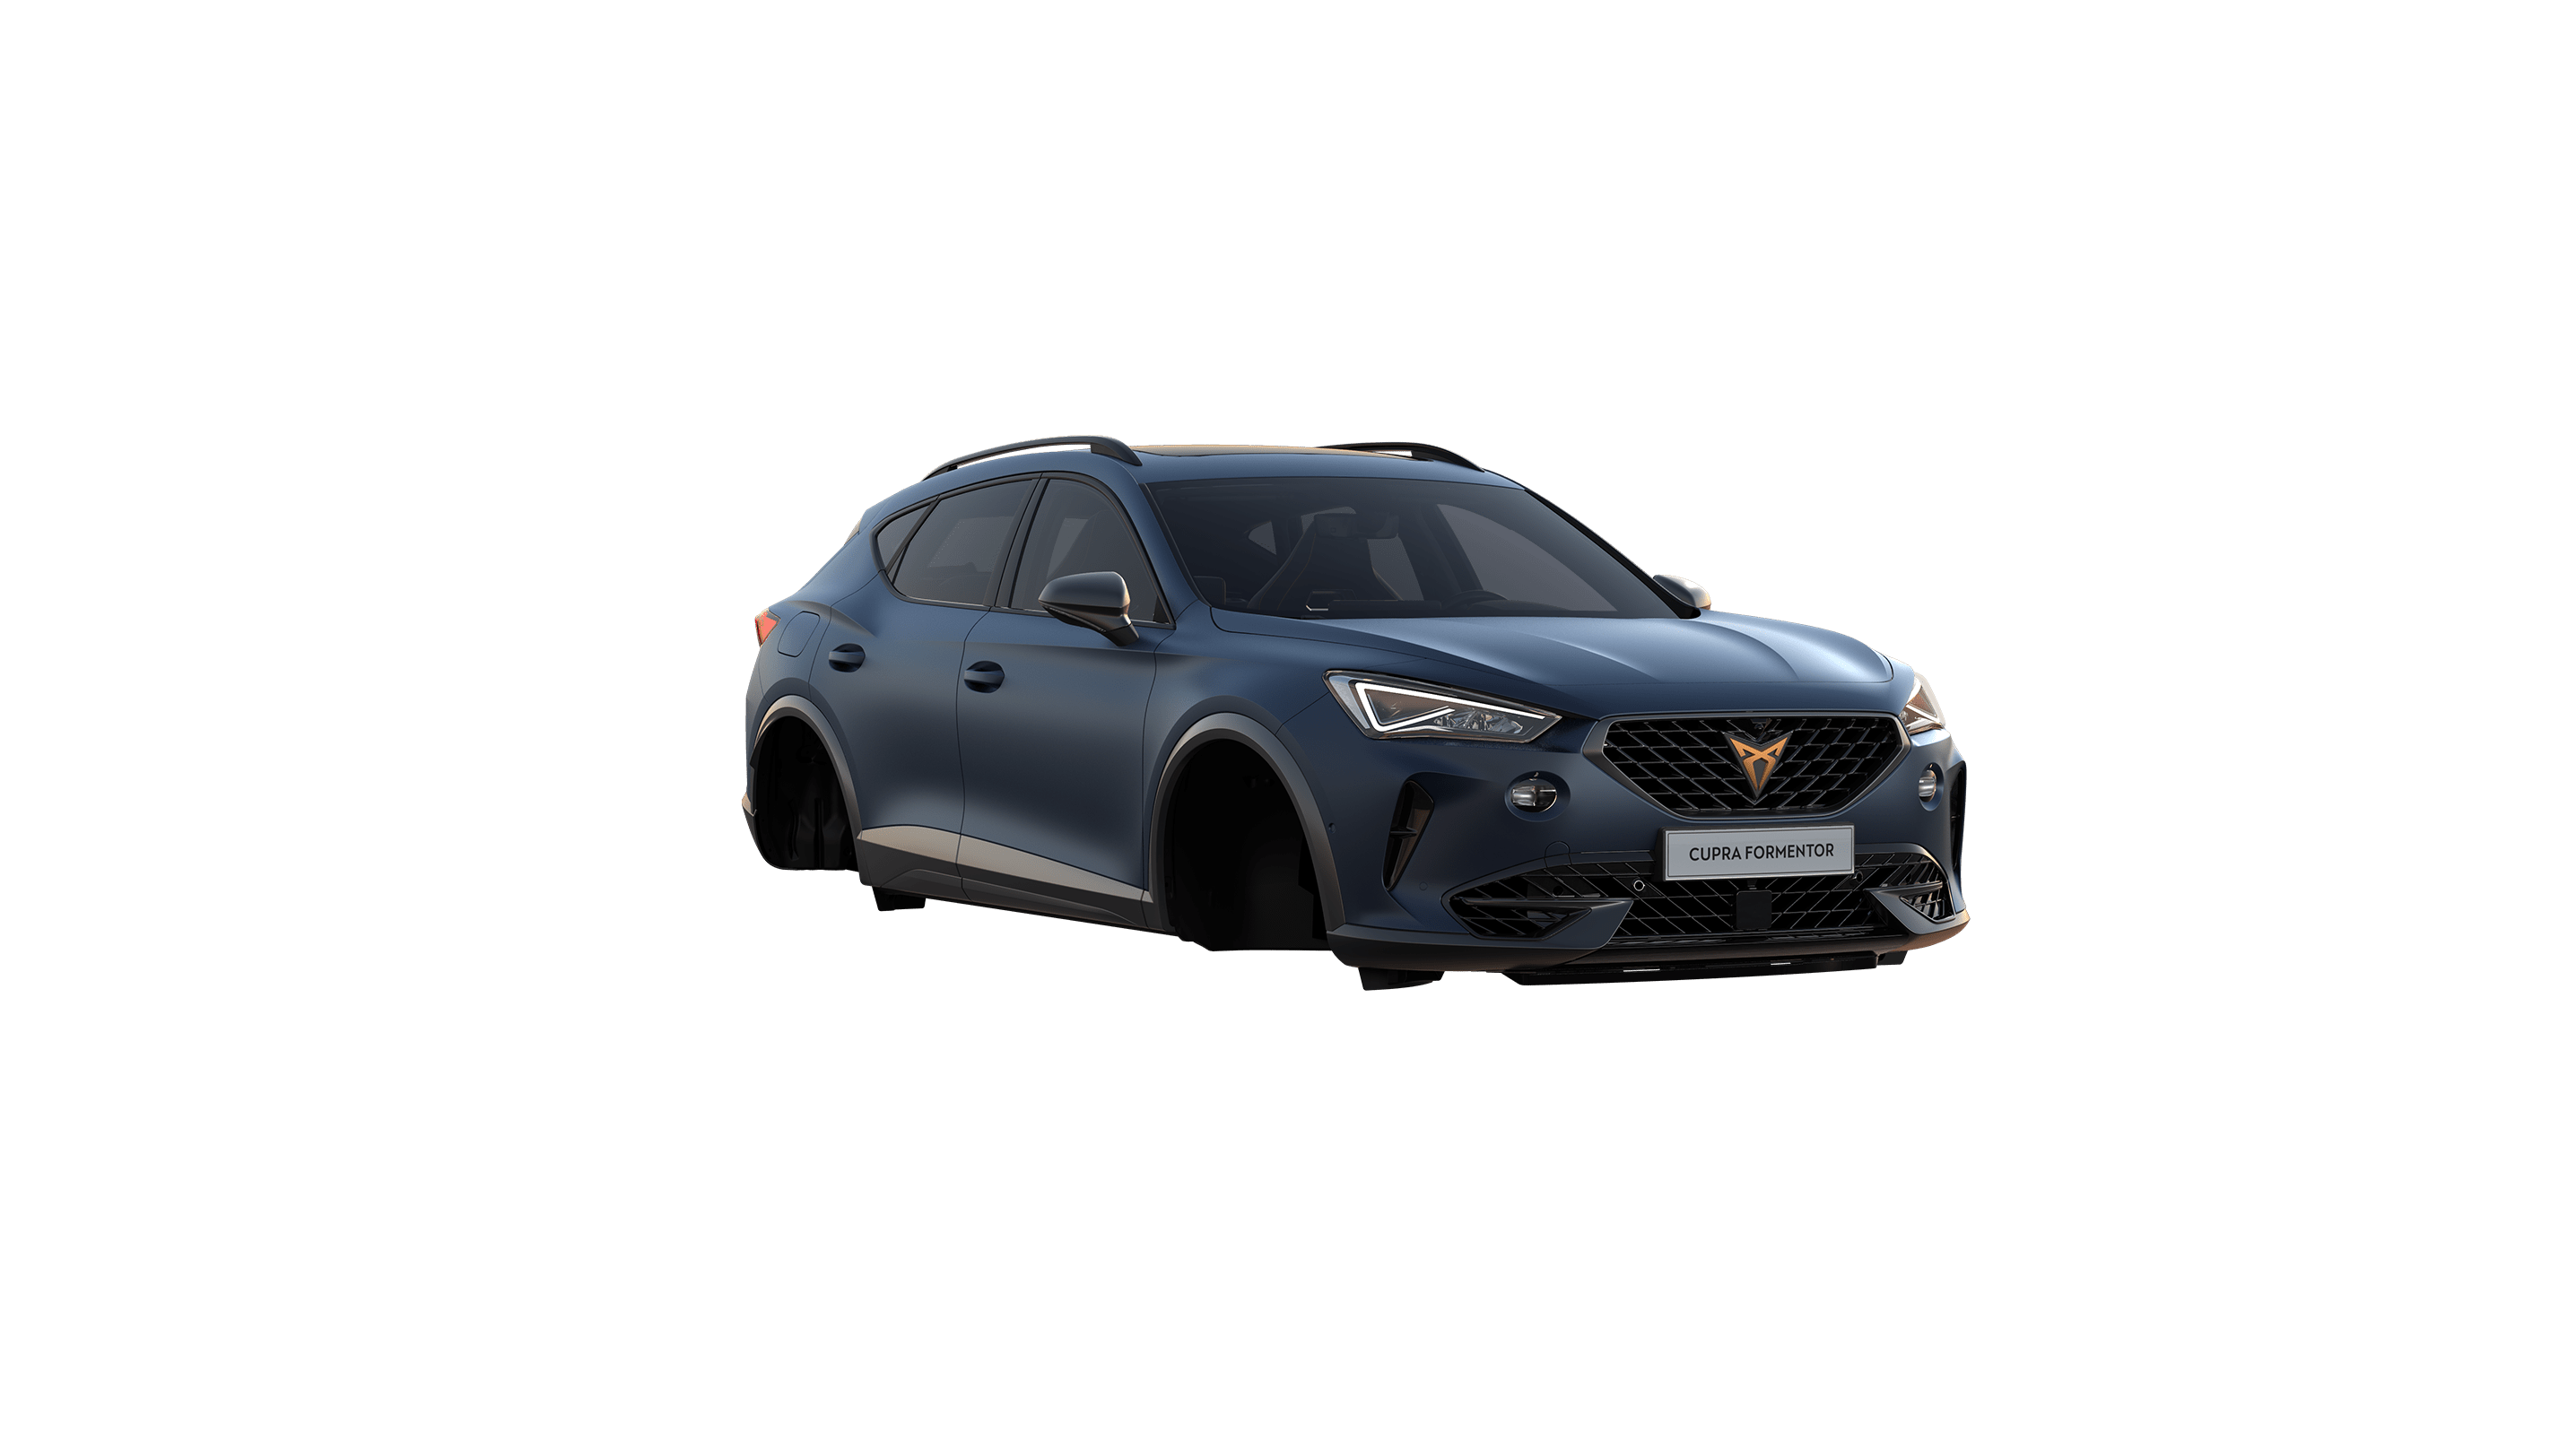 new cupra formentor .available in petrol blue matte colour